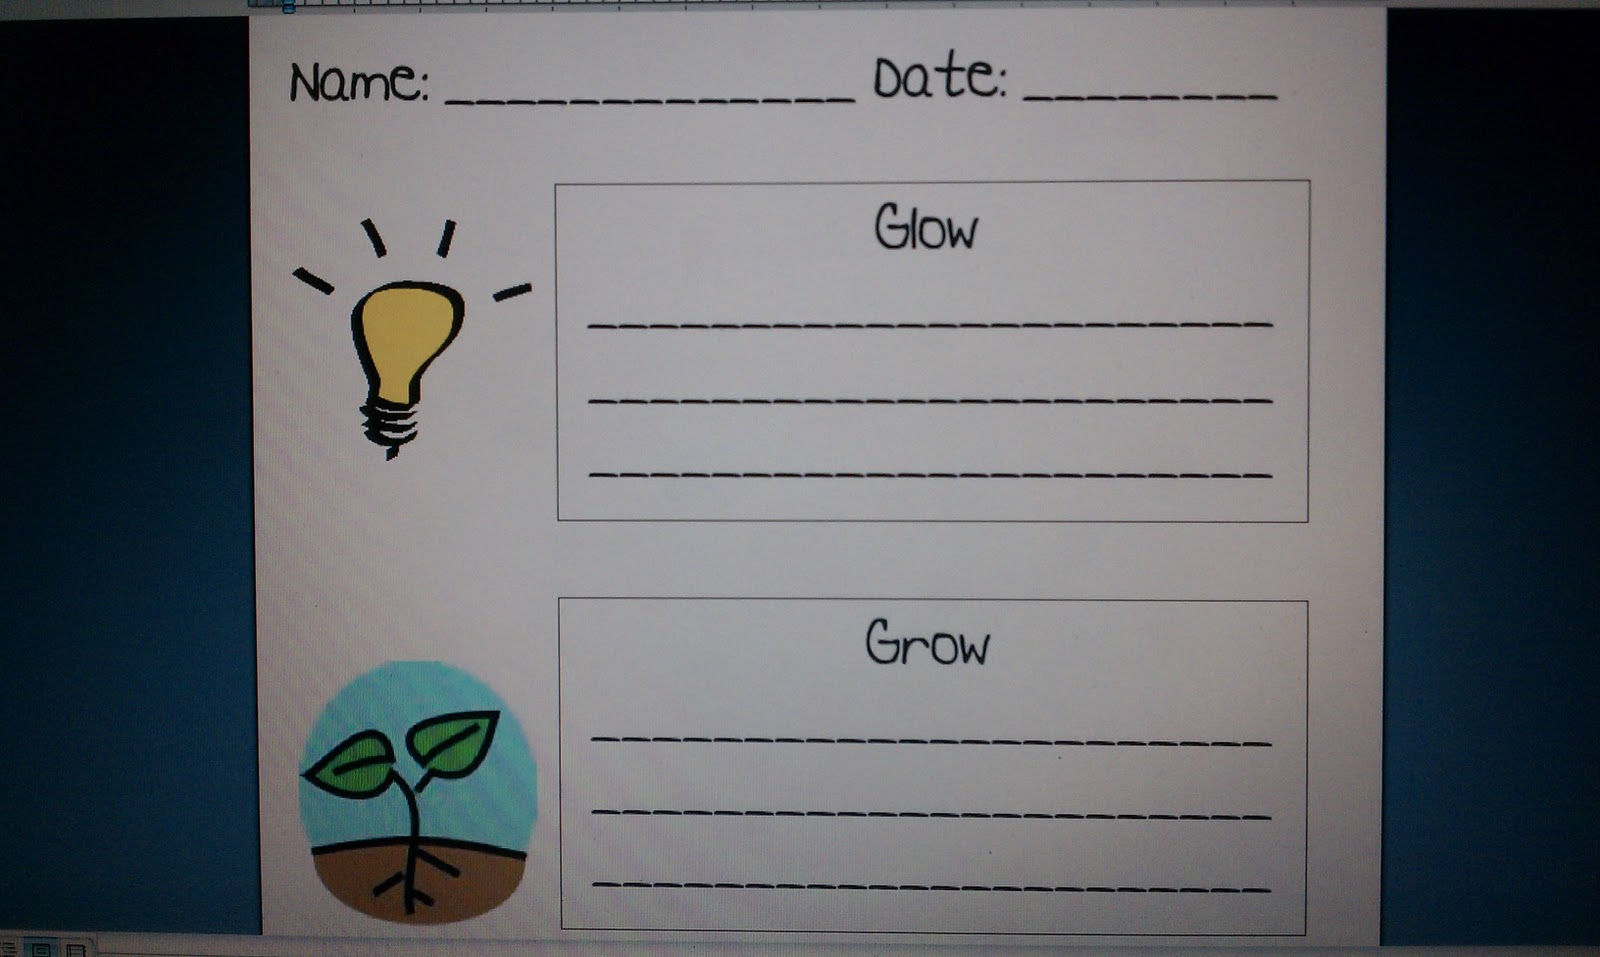 Go Glow and Grow http://wardswayofteaching.blogspot.com/2011/02/parent-teacher-conference-ideas.html